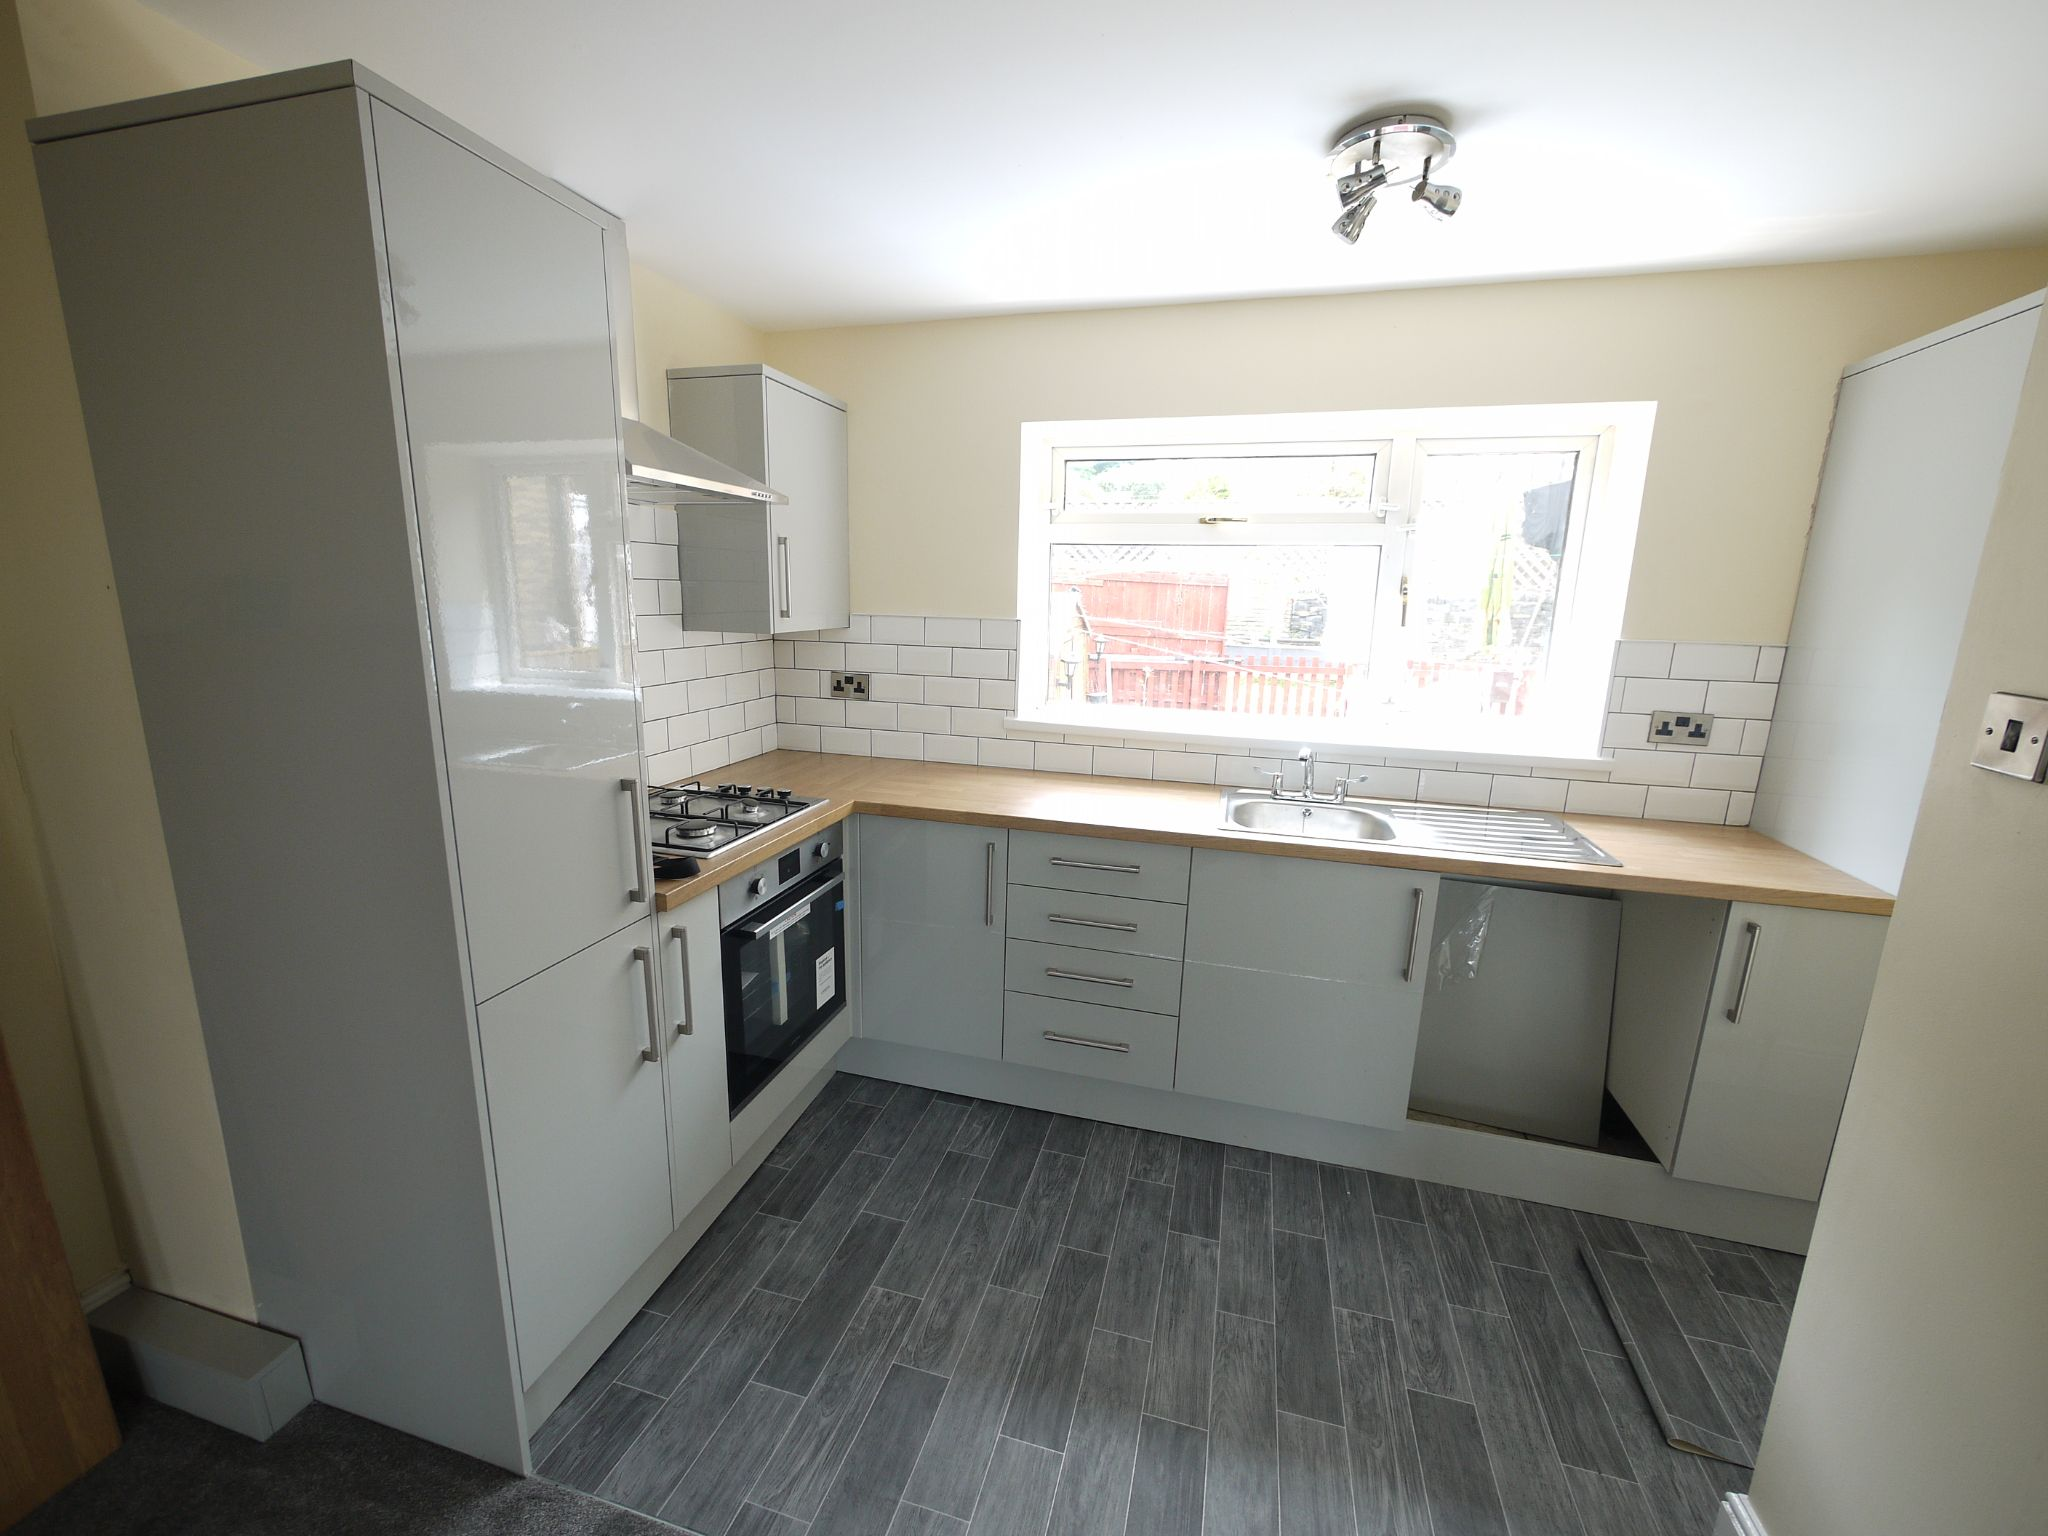 2 bedroom mid terraced house For Sale in Brighouse - Kitchen 1.